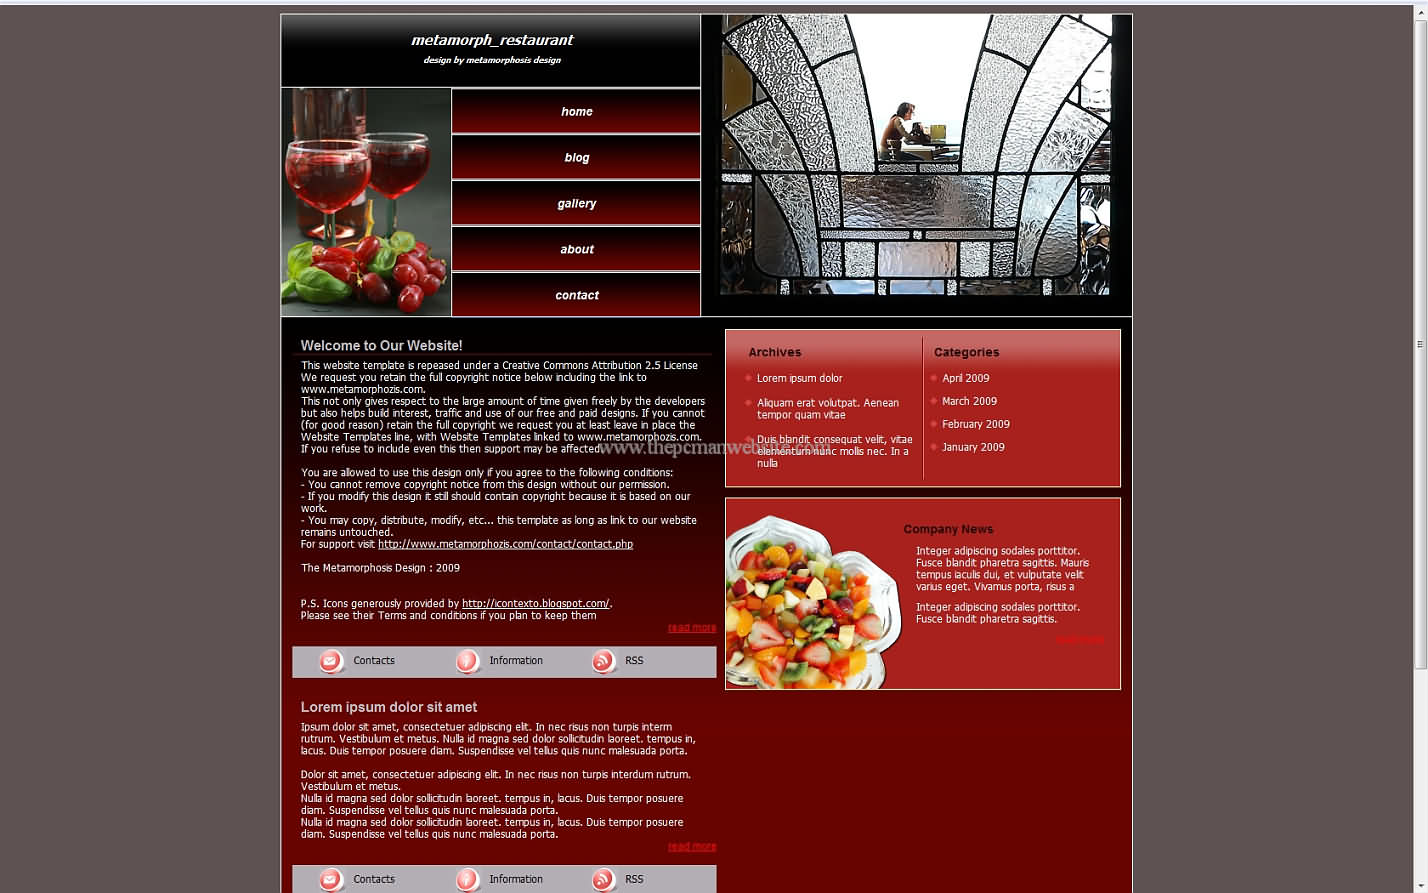 Metamorph Restaurant css template